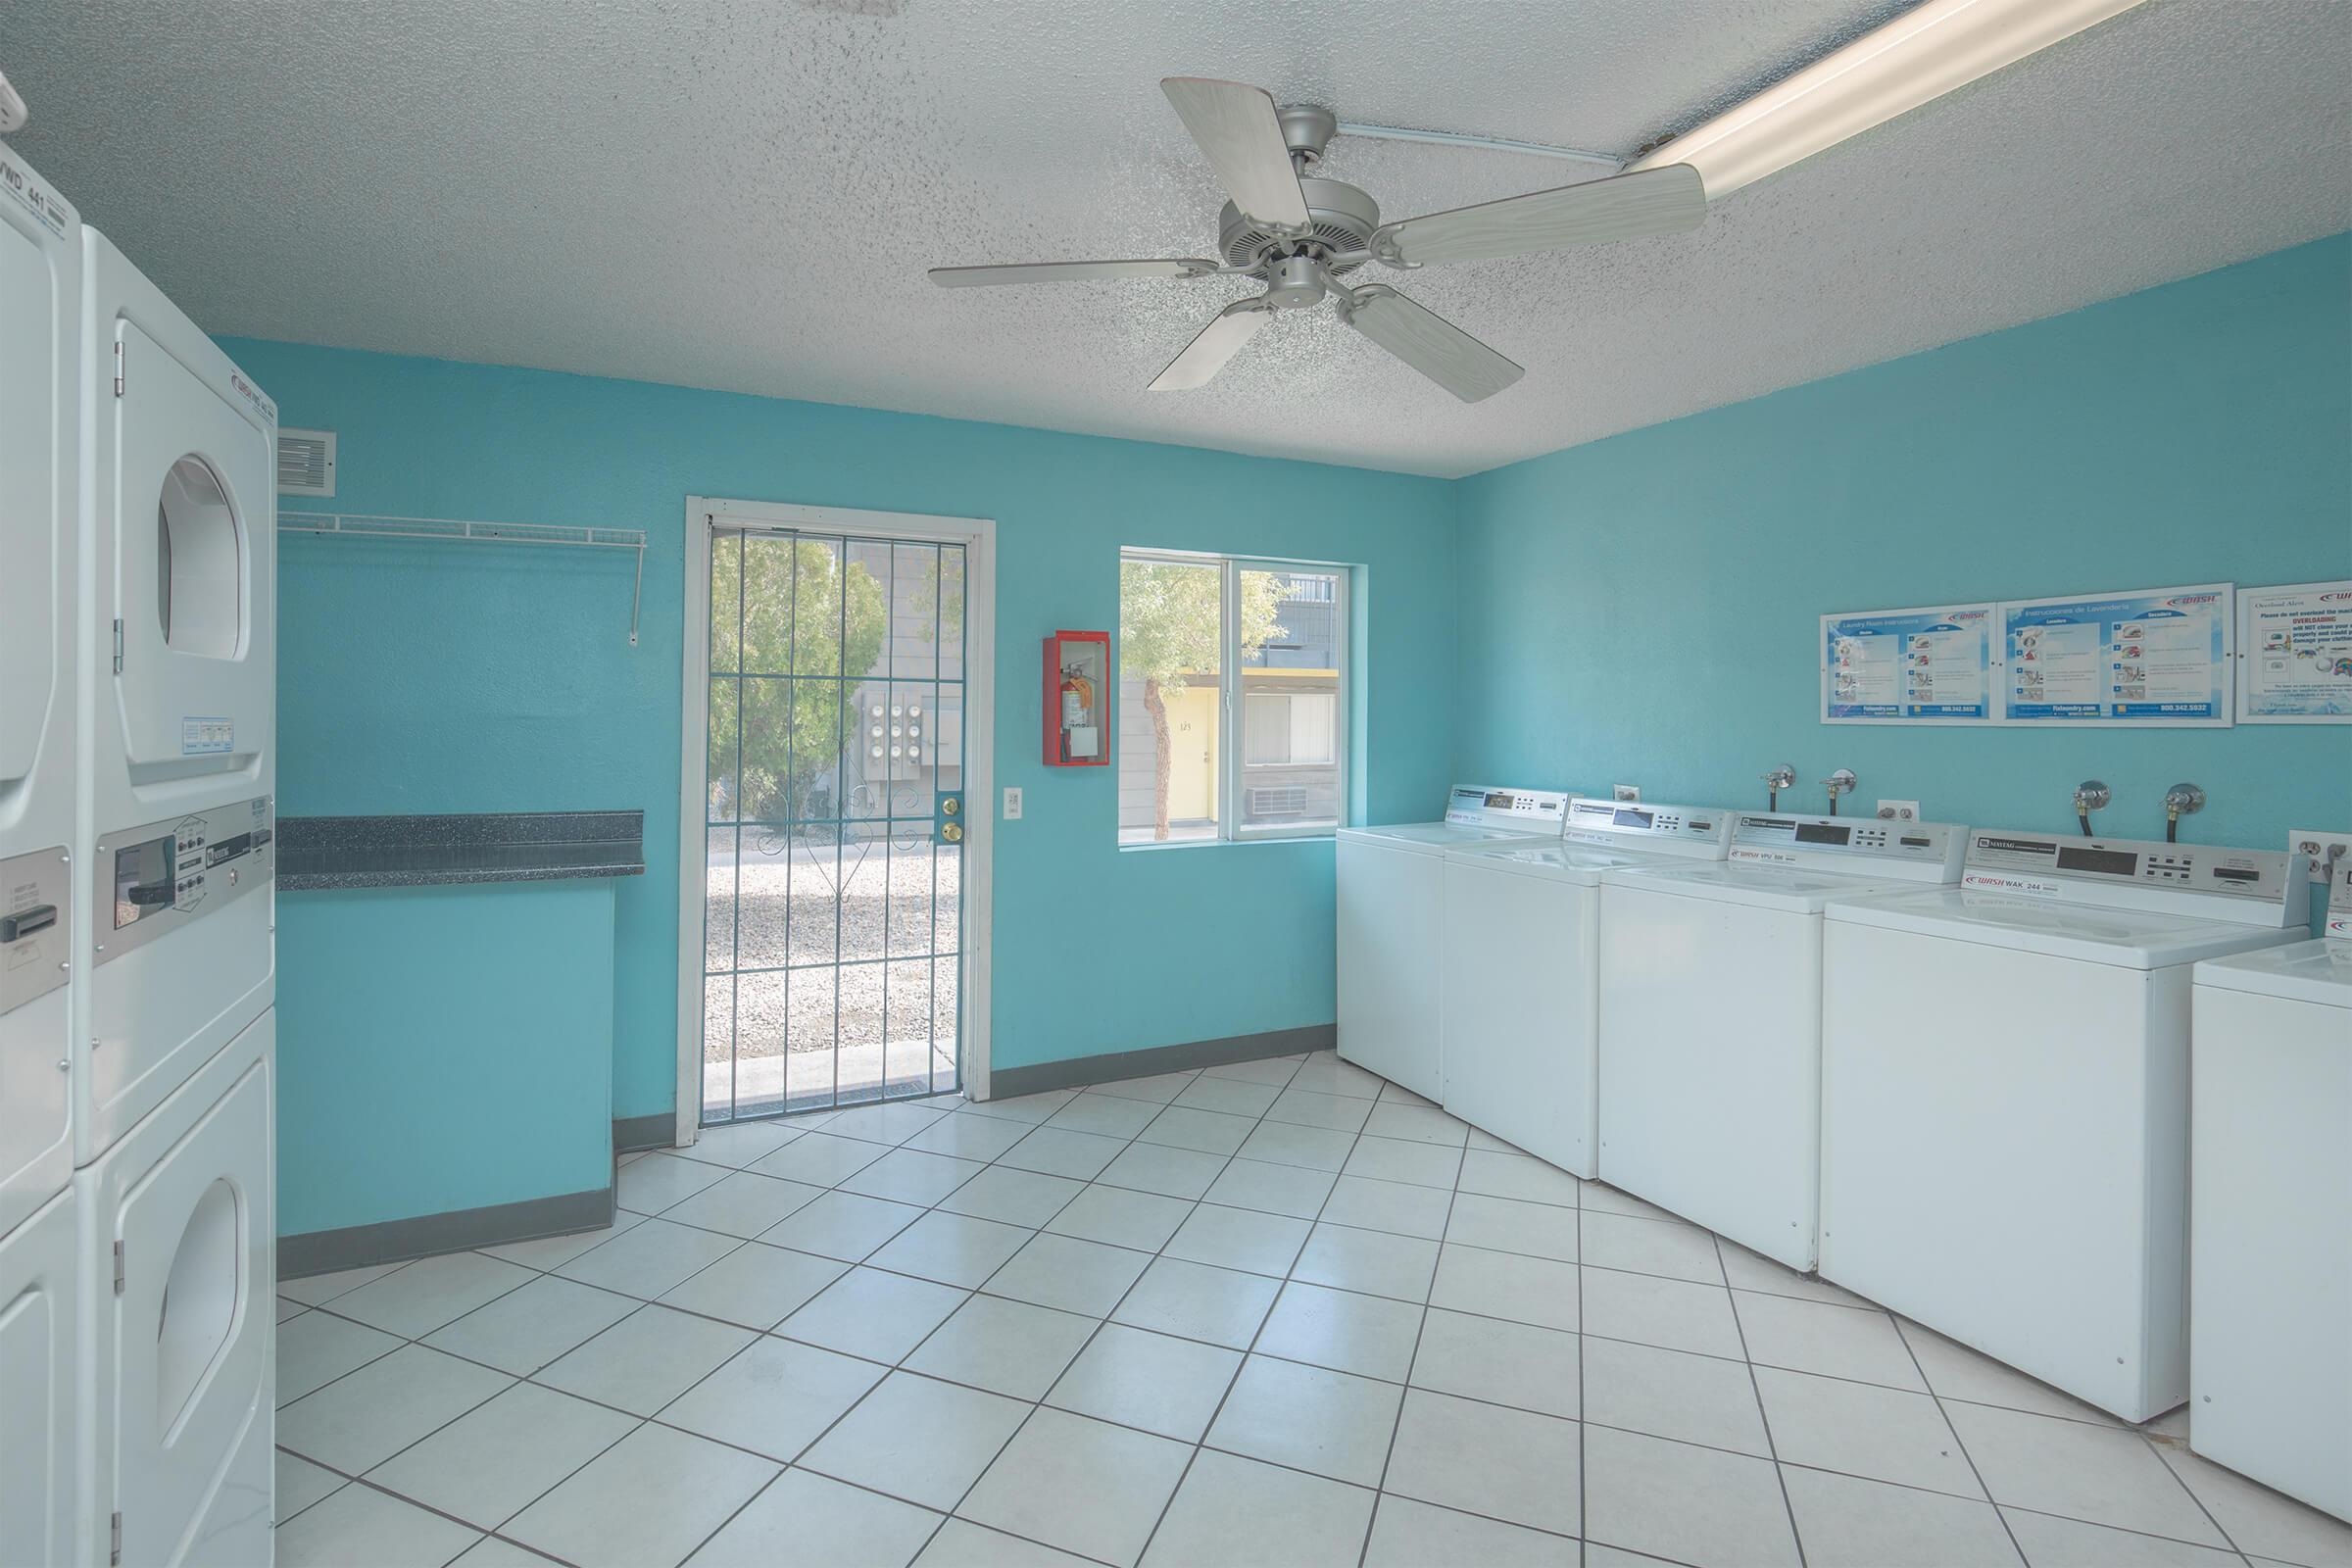 a kitchen with a blue and white tiled floor